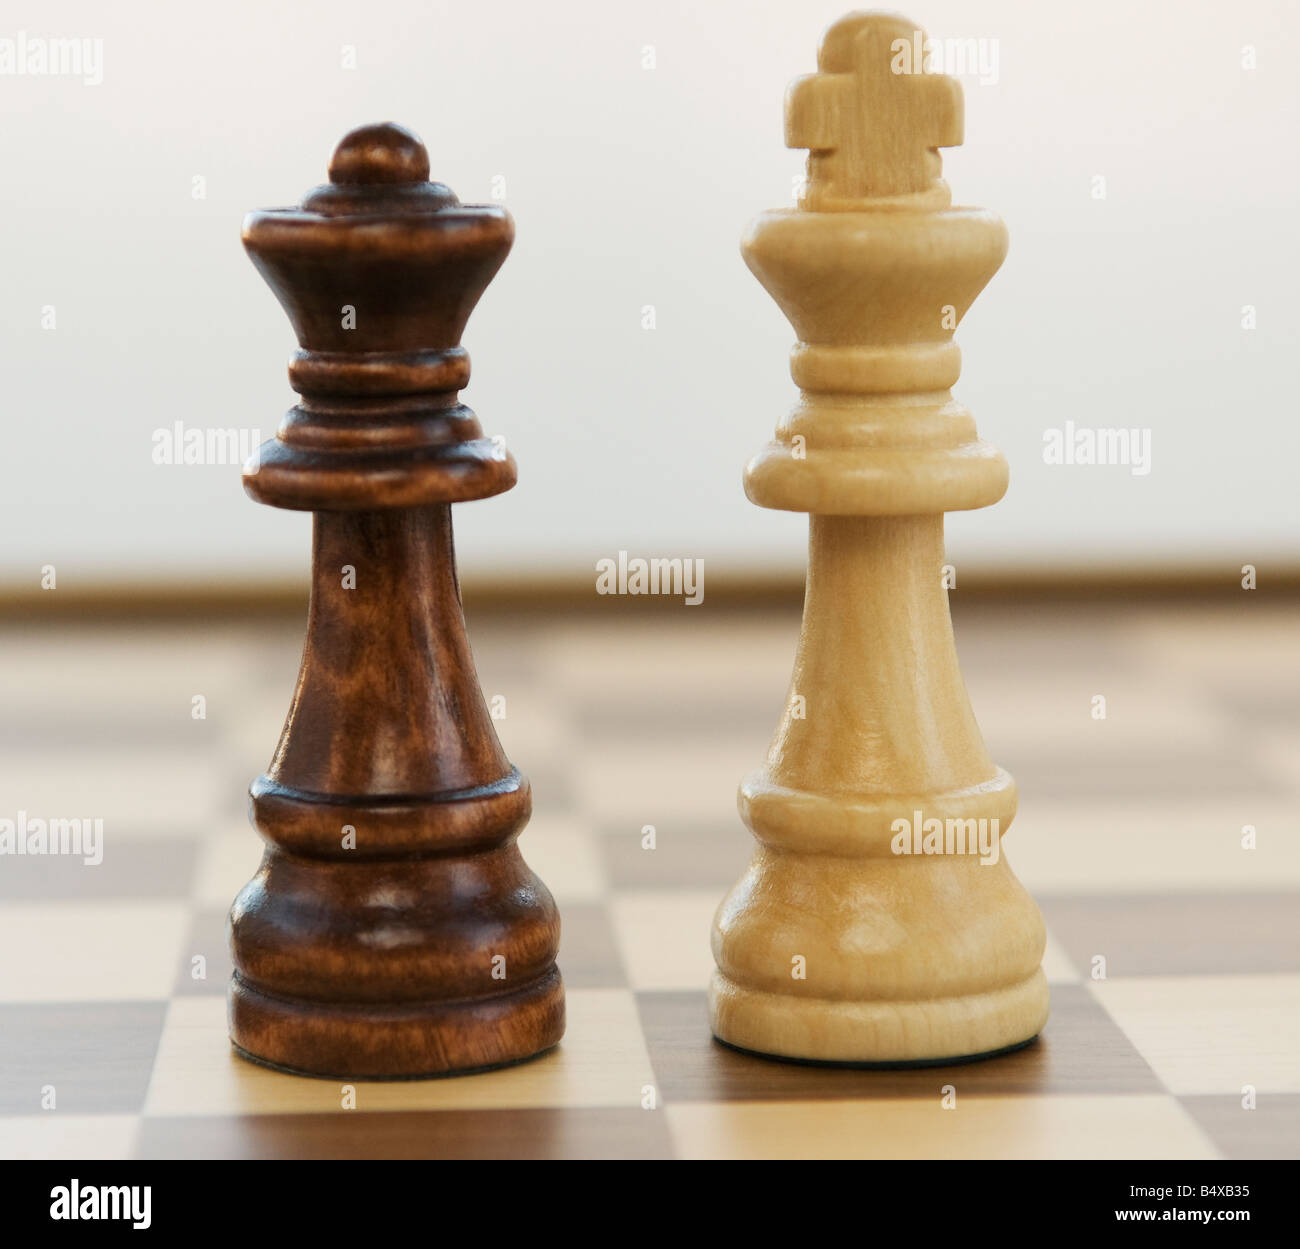 Opposing King And Queen Chess Pieces Stock Photo 20248457 Alamy